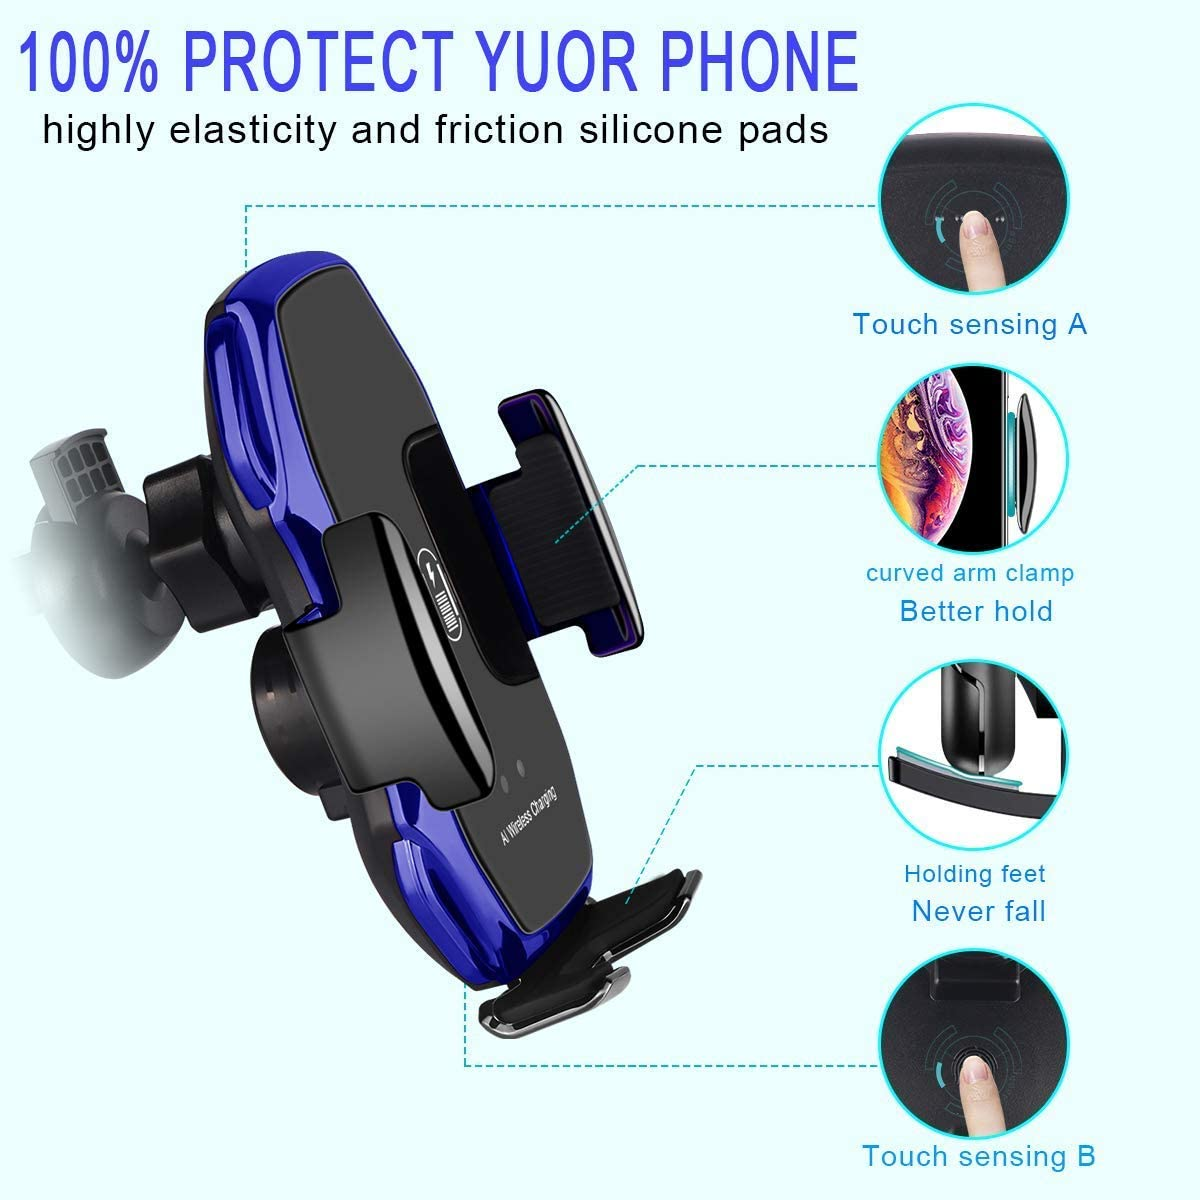 QI Wireless Fast Charging // S8 Note//Phone 11pro // Xs//XR//XS MAX // 8 // 8Plus // etc Compatible with Galaxy S10 A5 Black Car Phone Holder Mobile Phone Mount Smart Sensor GPS Bracket // S9